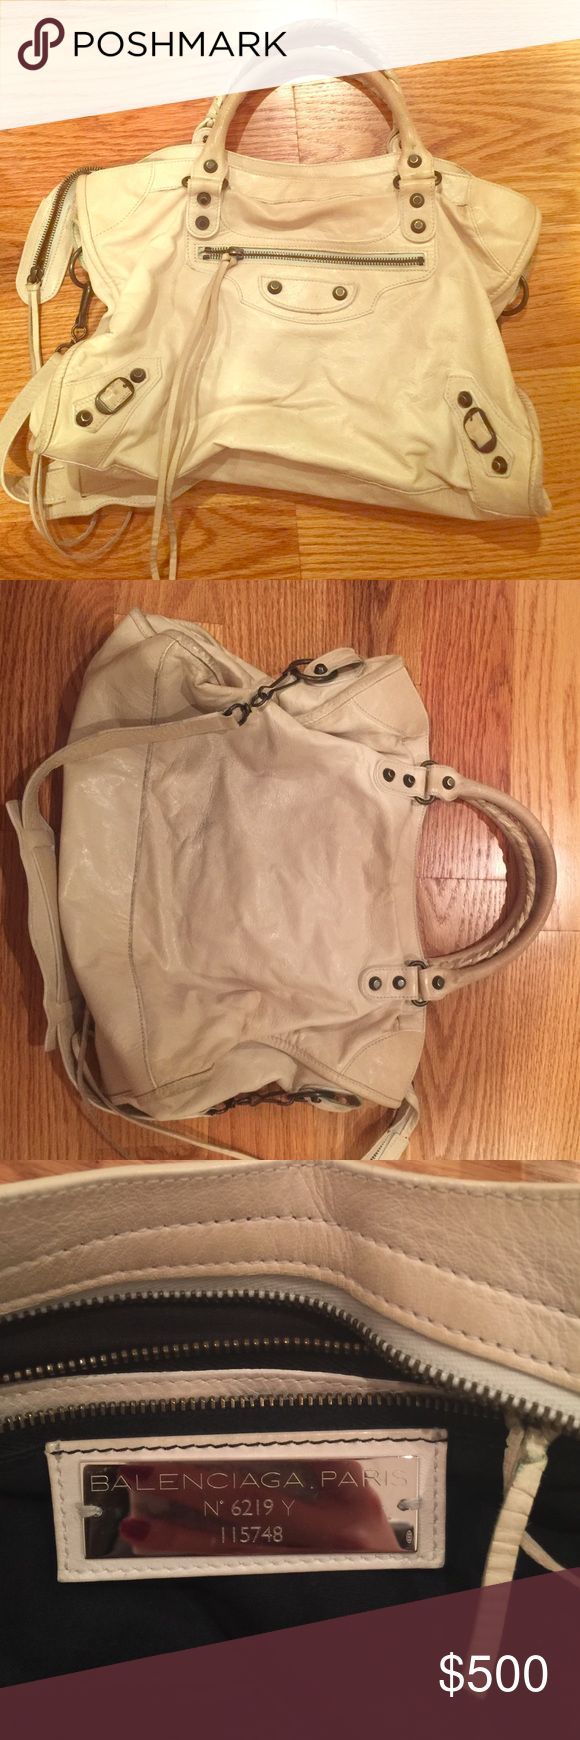 Authentic Balenciaga White Bag Used White Balenciaga Classic Motorcycle Bag. Still in Department Stores and Online Retail Sites like Net-A-Porter, lyst, overstock. comes with original Dust Bag. Balenciaga Bags Totes